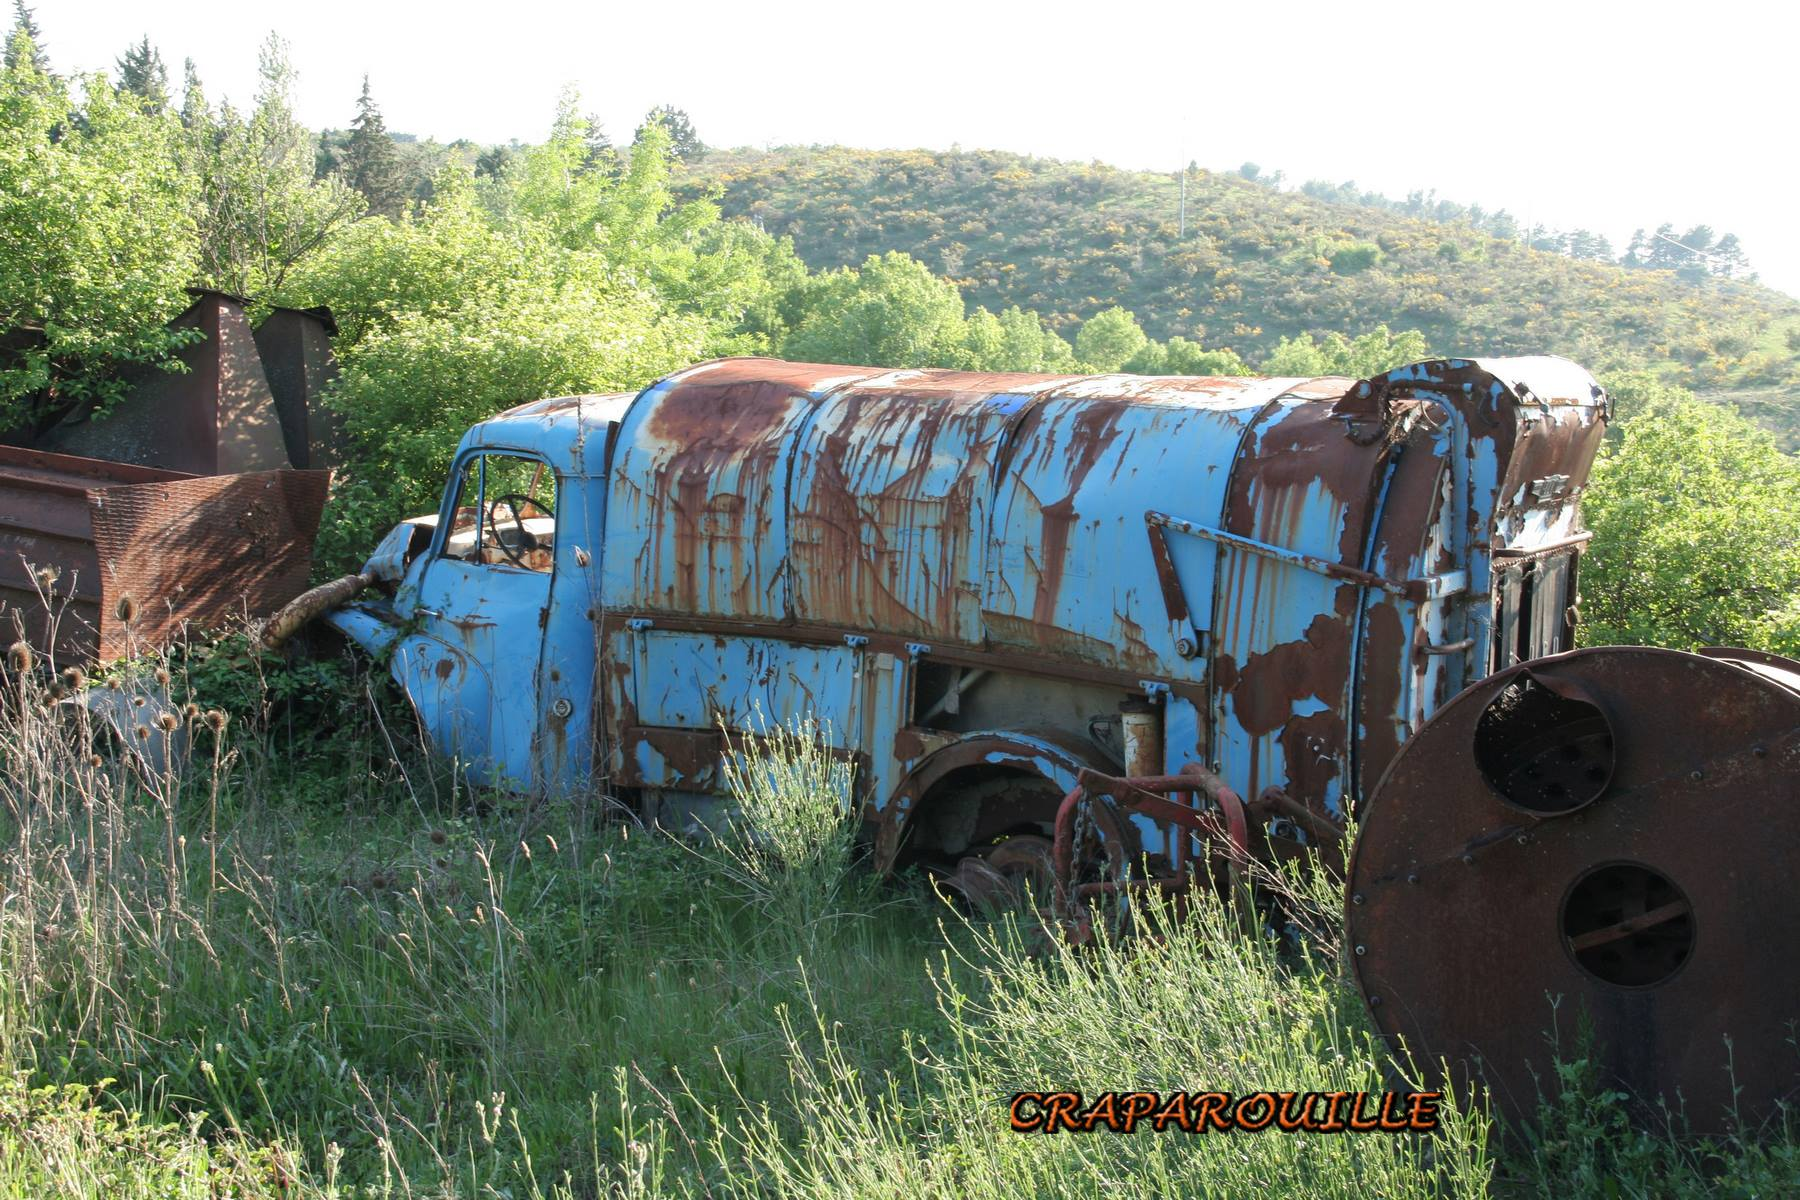 Photography-Diamonds-in-Rust-Craparouille-136